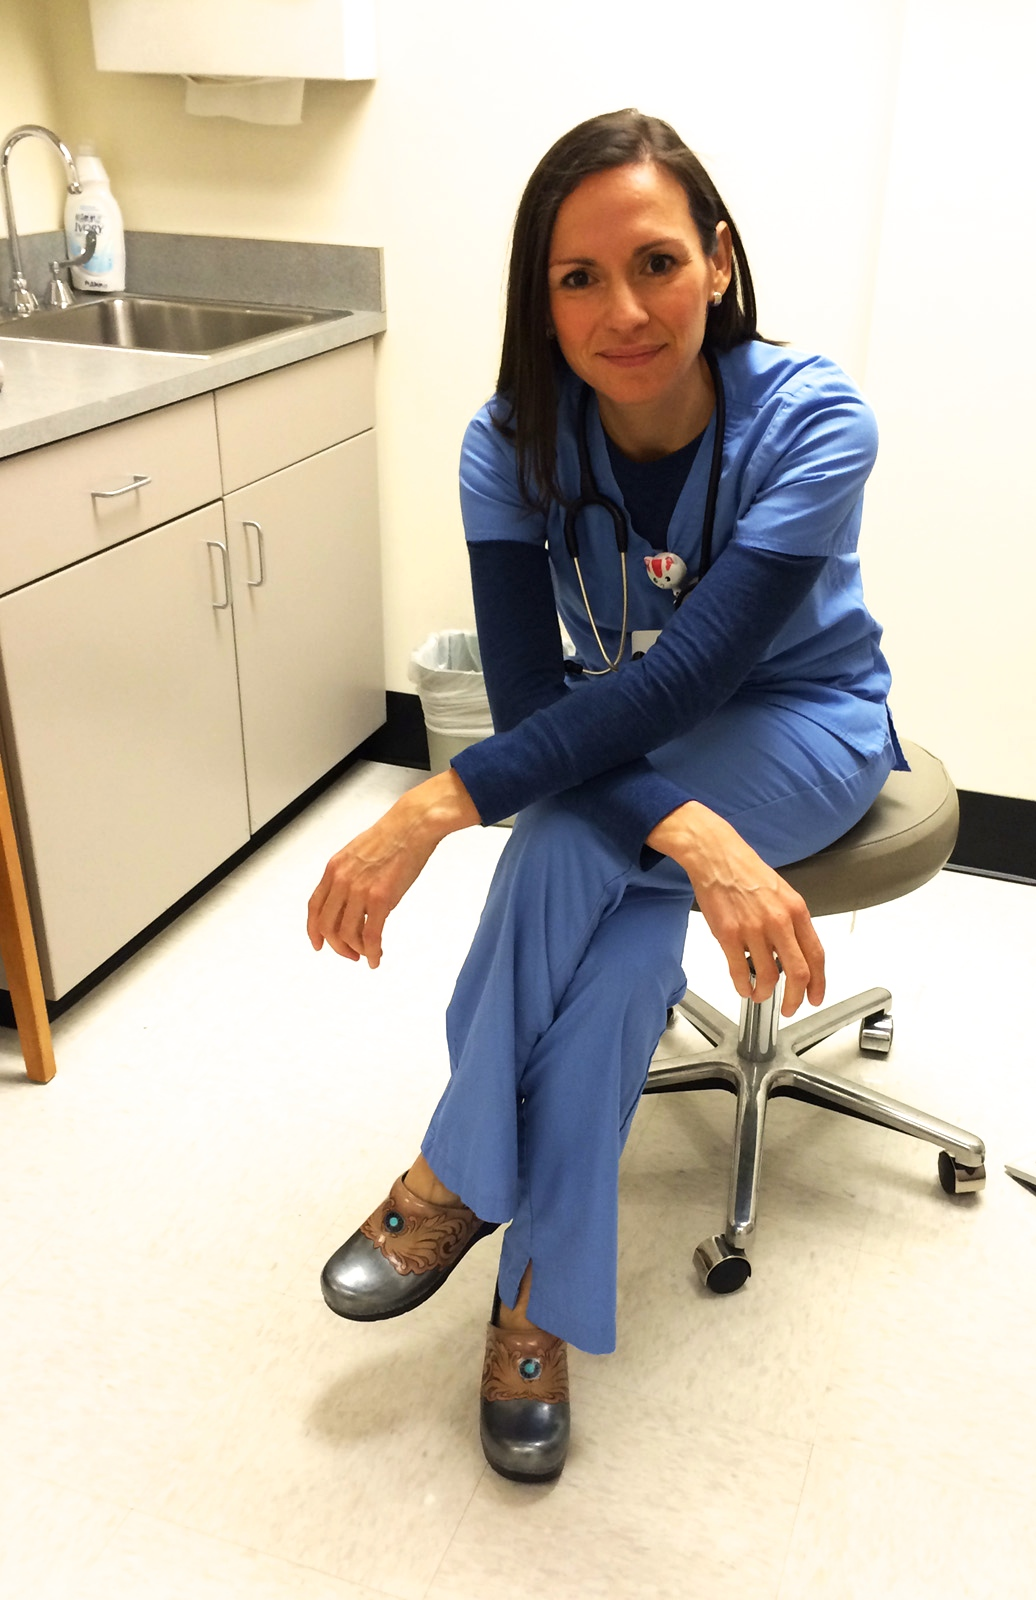 What Shoes Do Nurses Wear? Finding a right pair of shoes for nurse seems not to be an easy task. This is also not too difficult if you have basic knowledge. What Shoes Do Nurses Wear? Finding a right pair of shoes for nurse seems not to be an easy task. This is also not too difficult if you have basic knowledge. Share;.